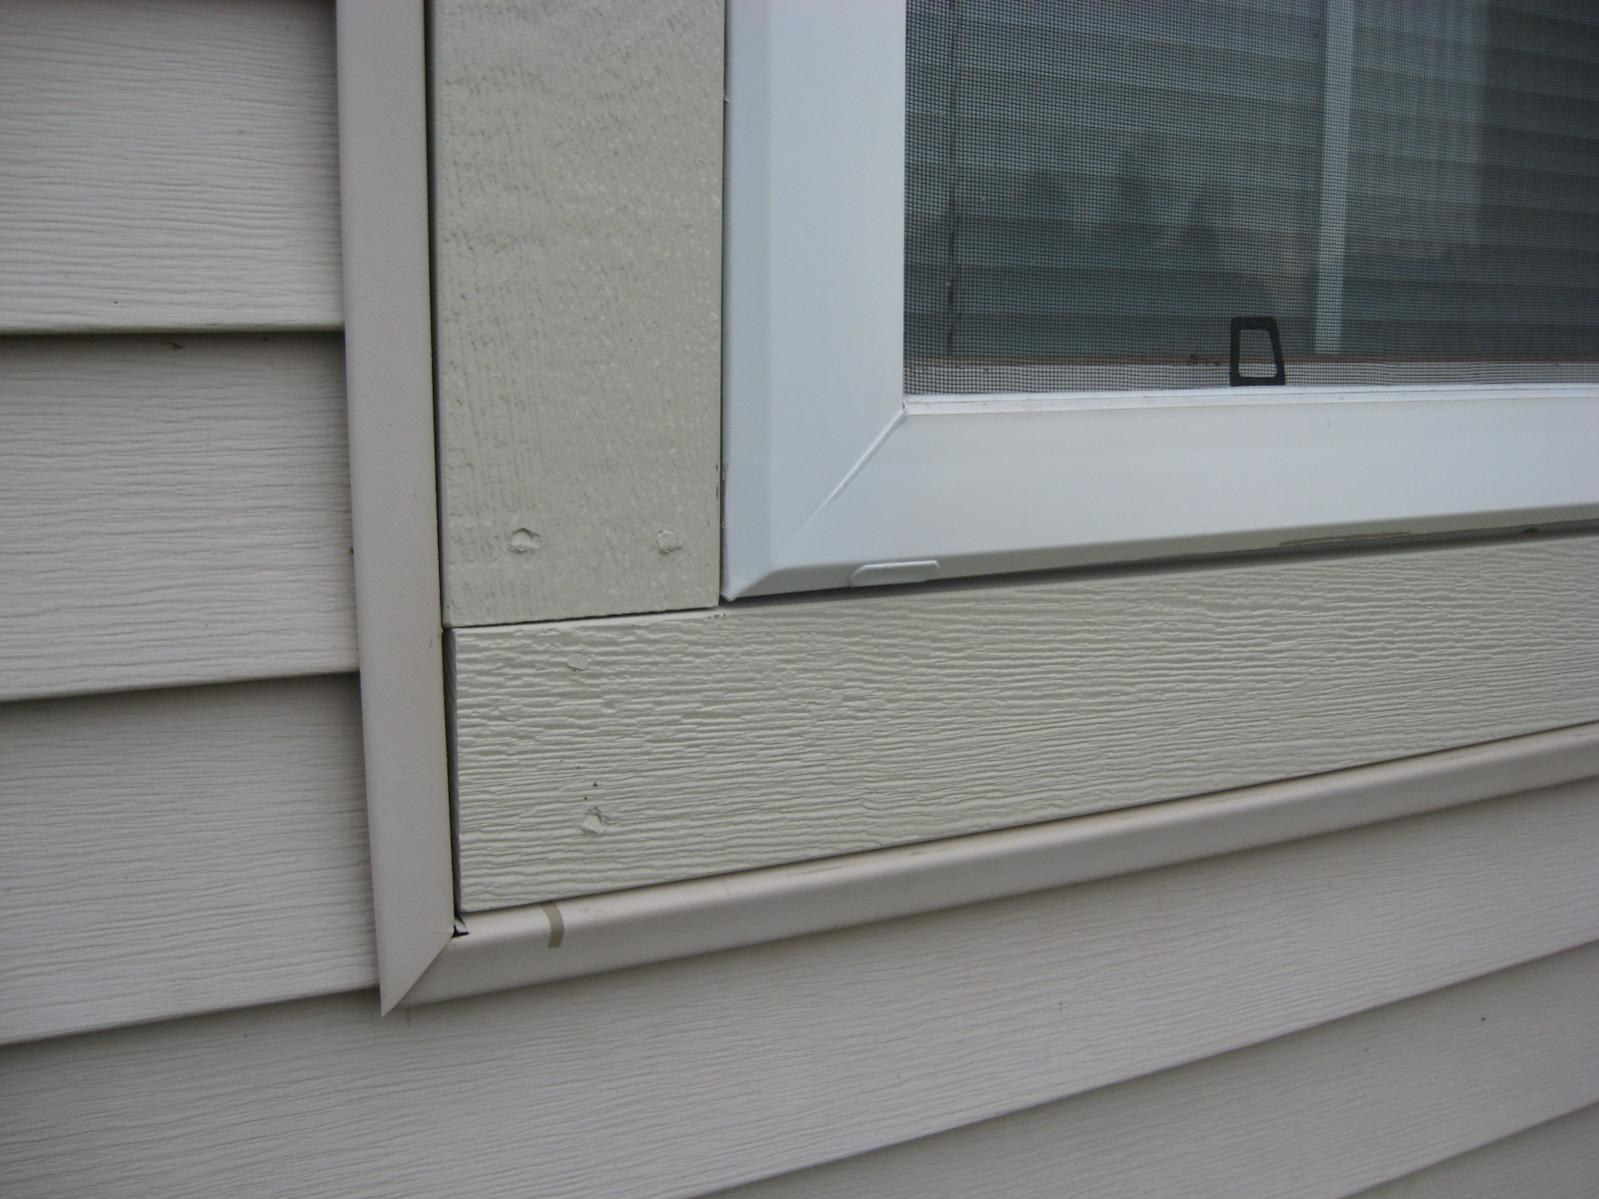 Vinyl Scratch Repair Page 2 Windows Siding And Doors